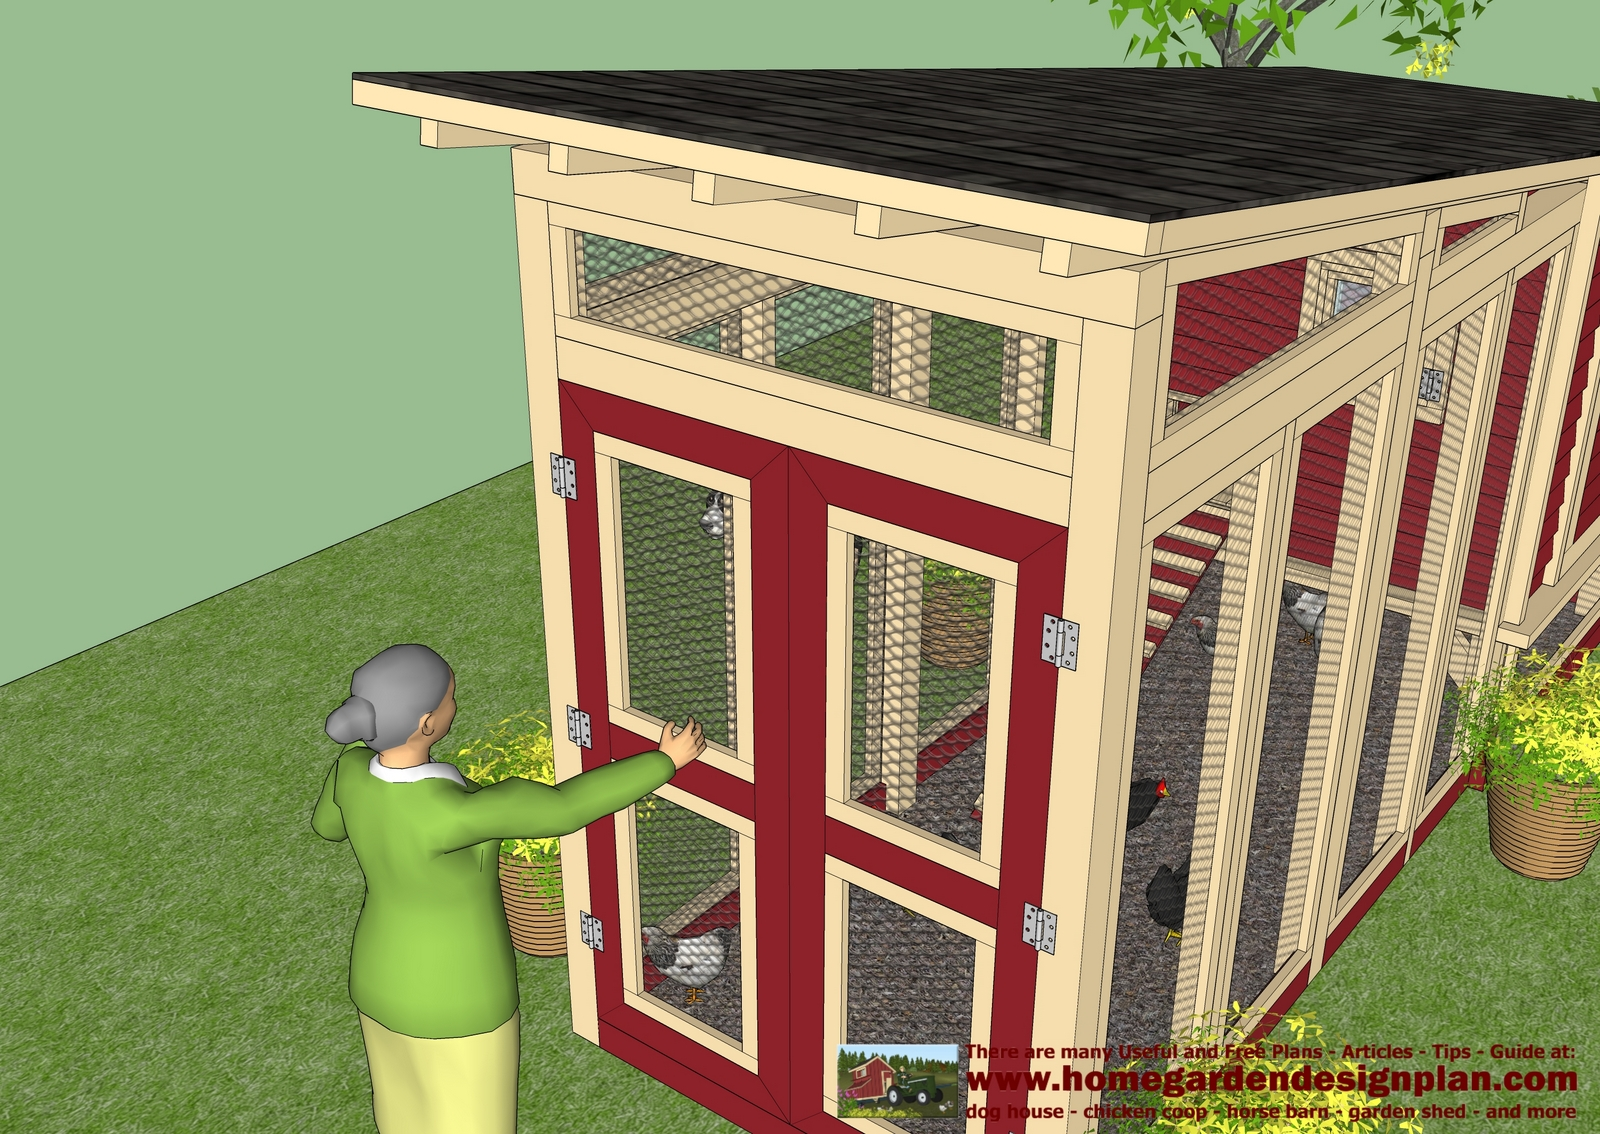 Hen 39 s knowing 10 chicken coop plans free for Plans chicken coop